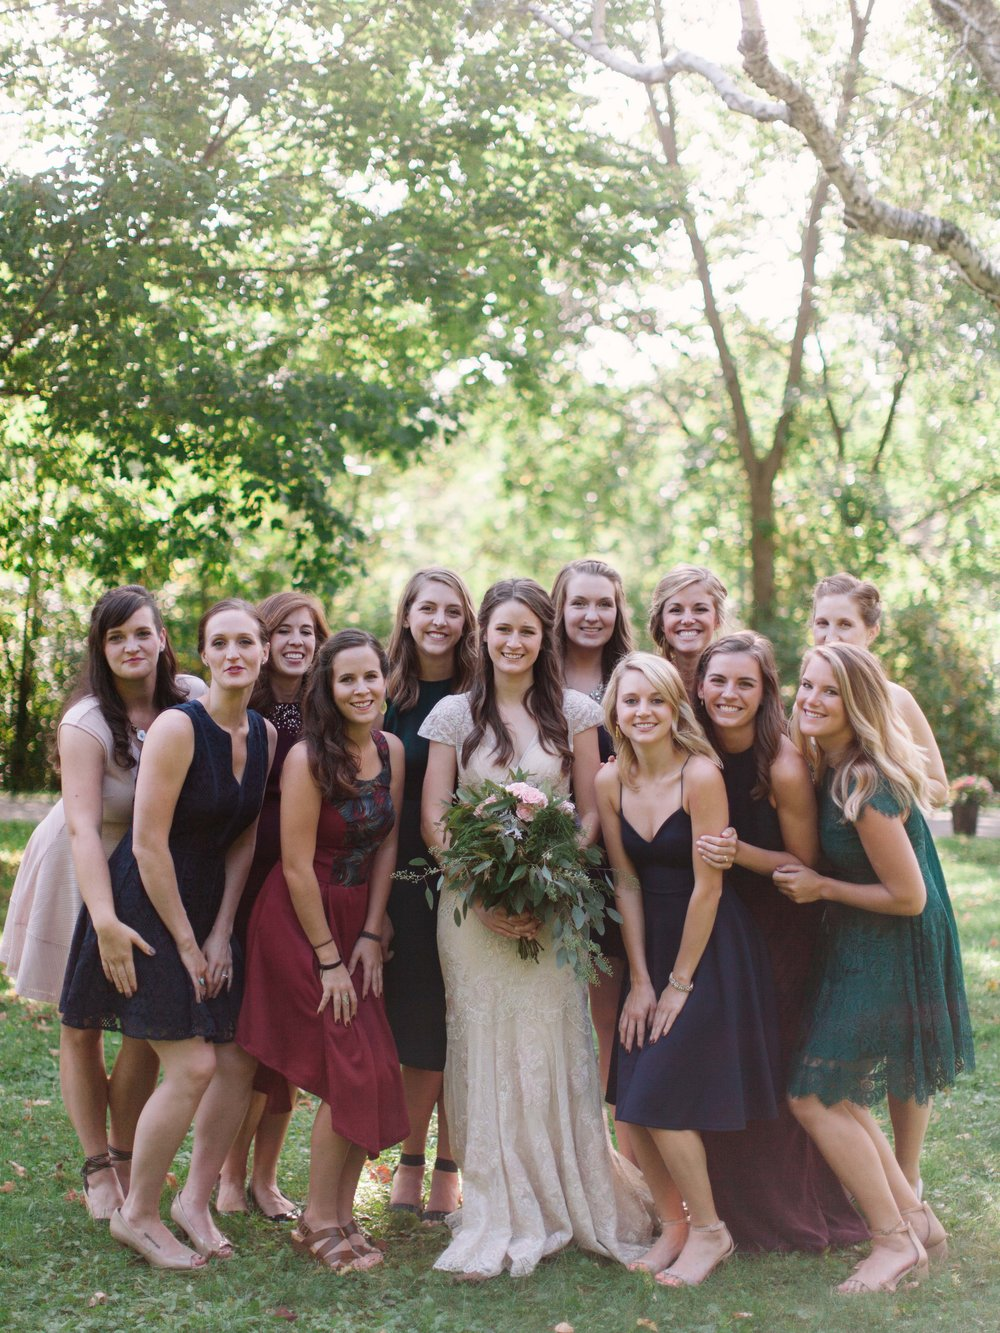 kateweinsteinphoto_clairewillie_wedding-262.jpg